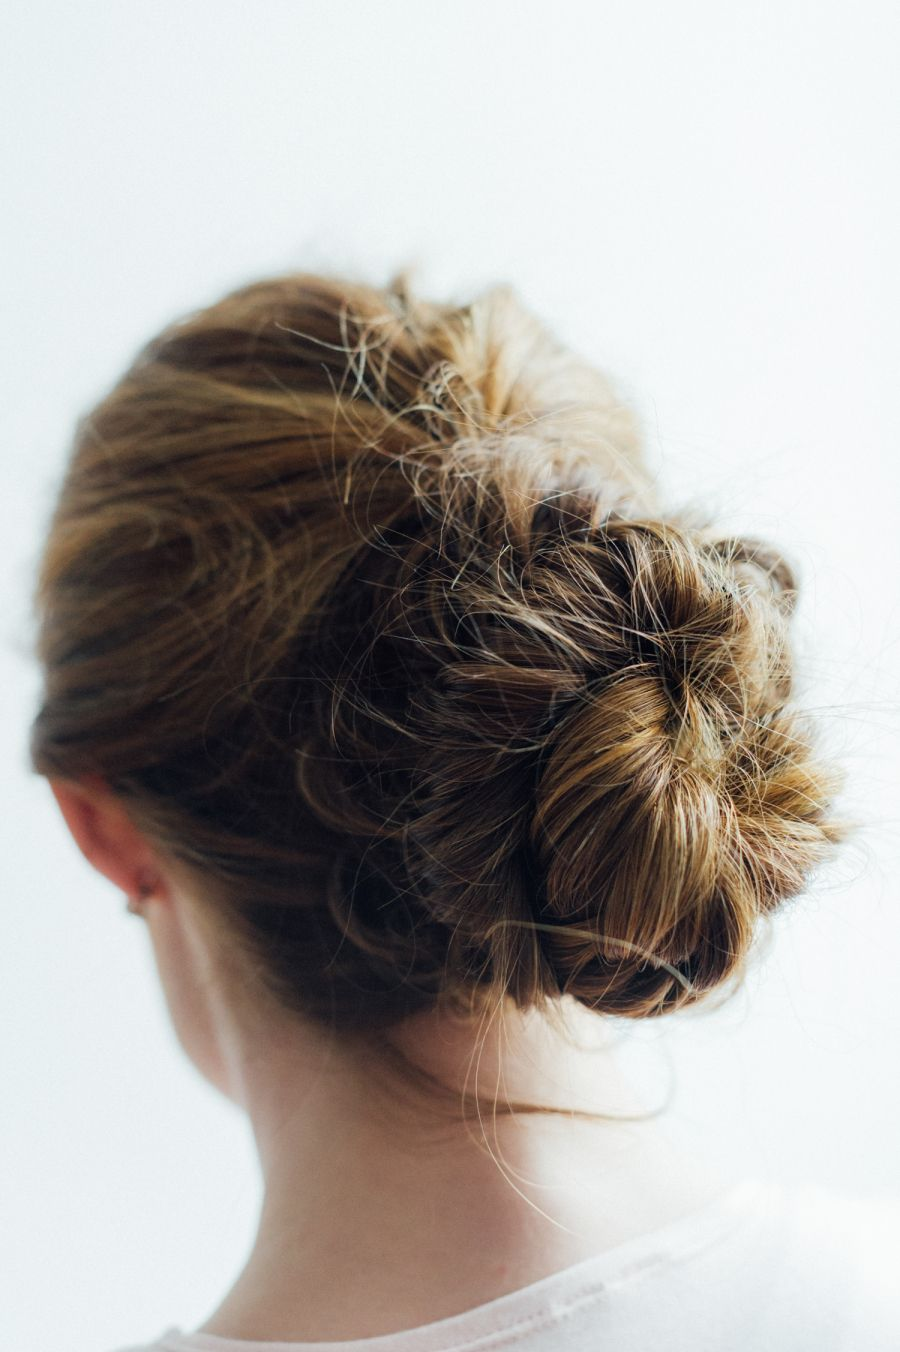 Attending a Summer Wedding? Make this Braided Bun Your Go-to | Braided bun, Hair beauty, Fancy ...